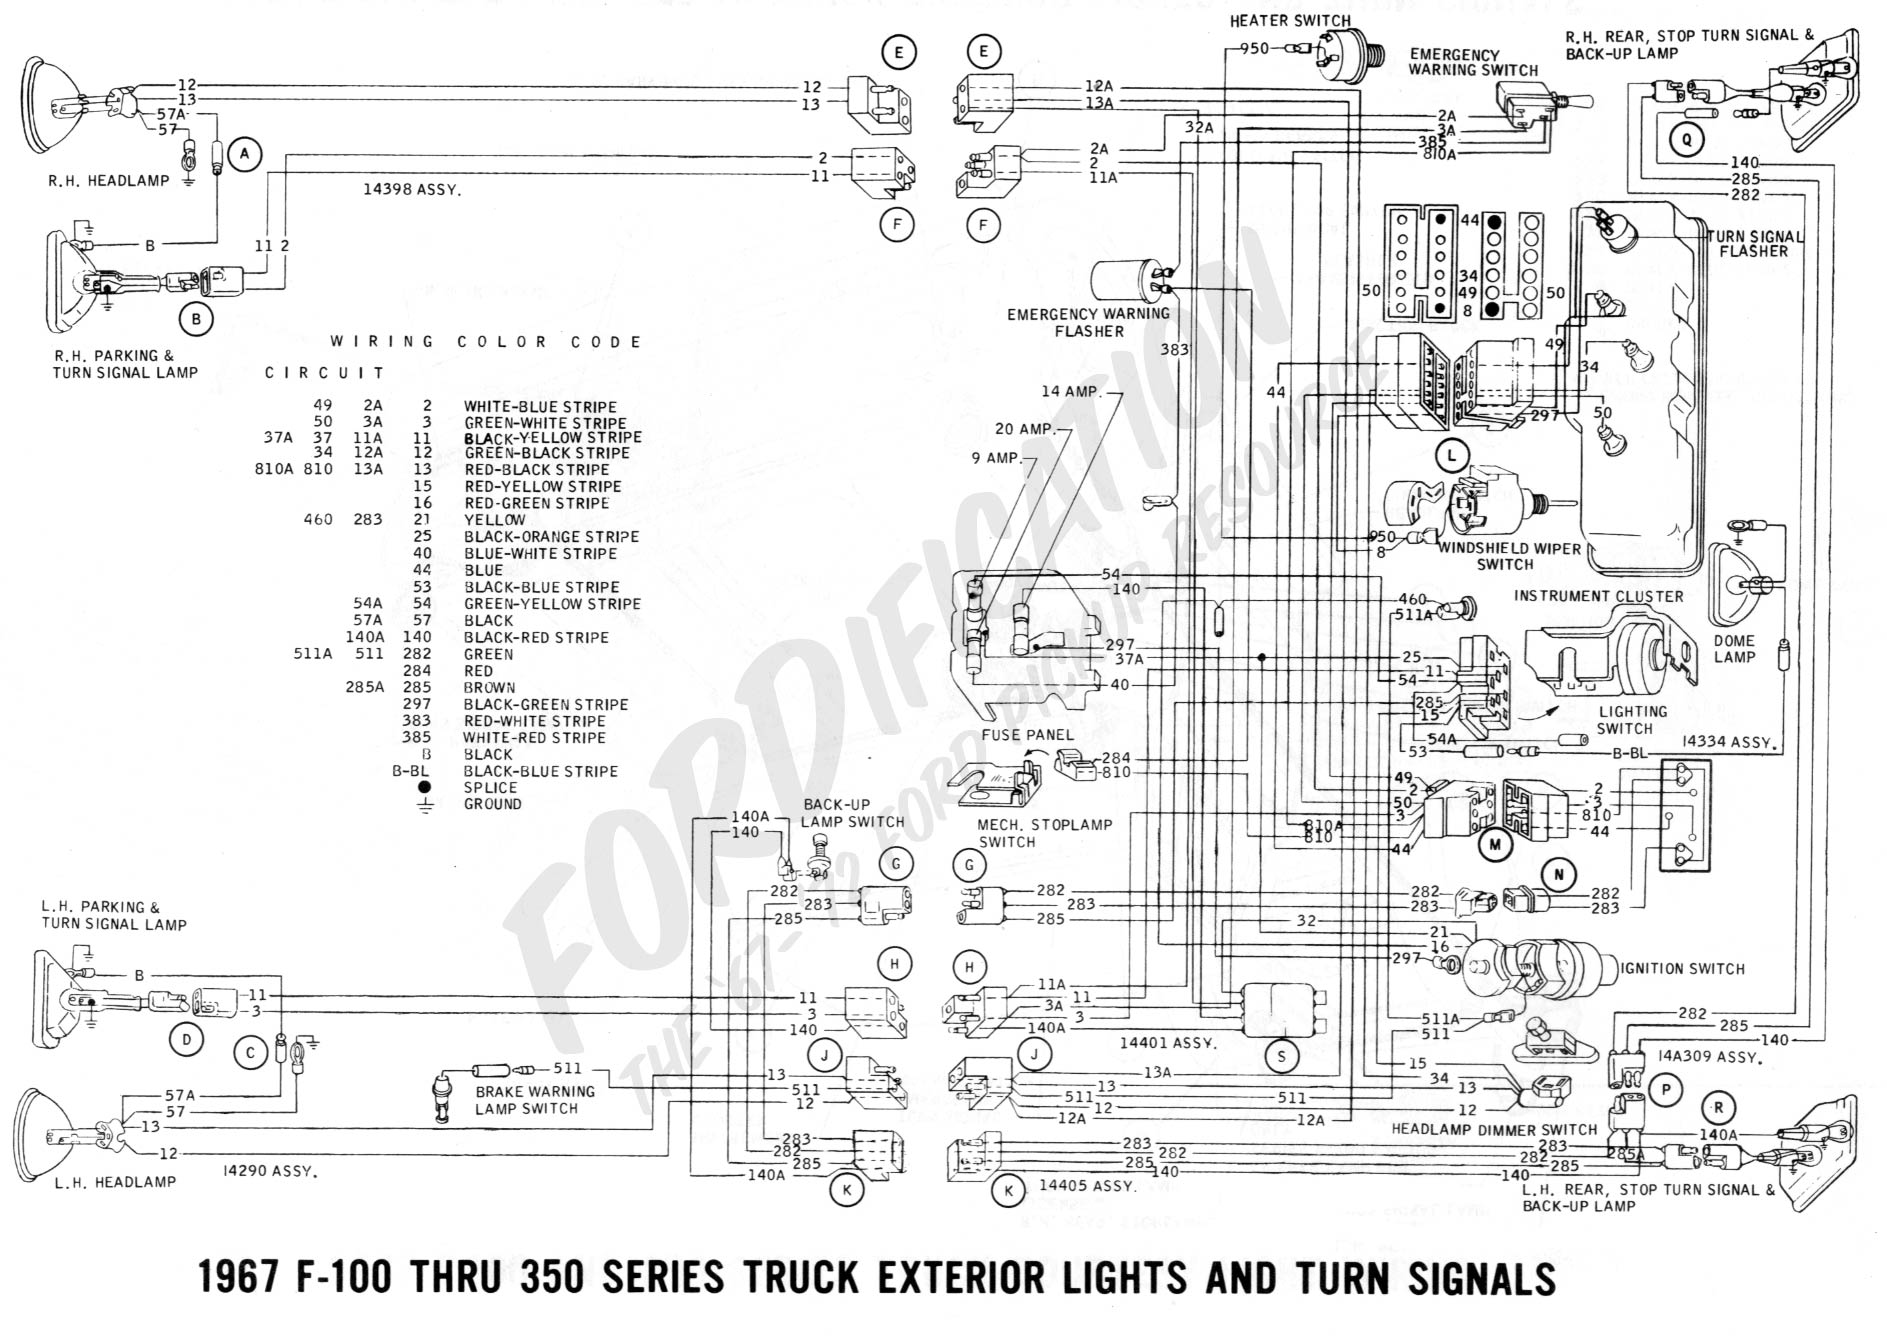 1970 Fairlane 500 Steering Column Diagram F150 Steering